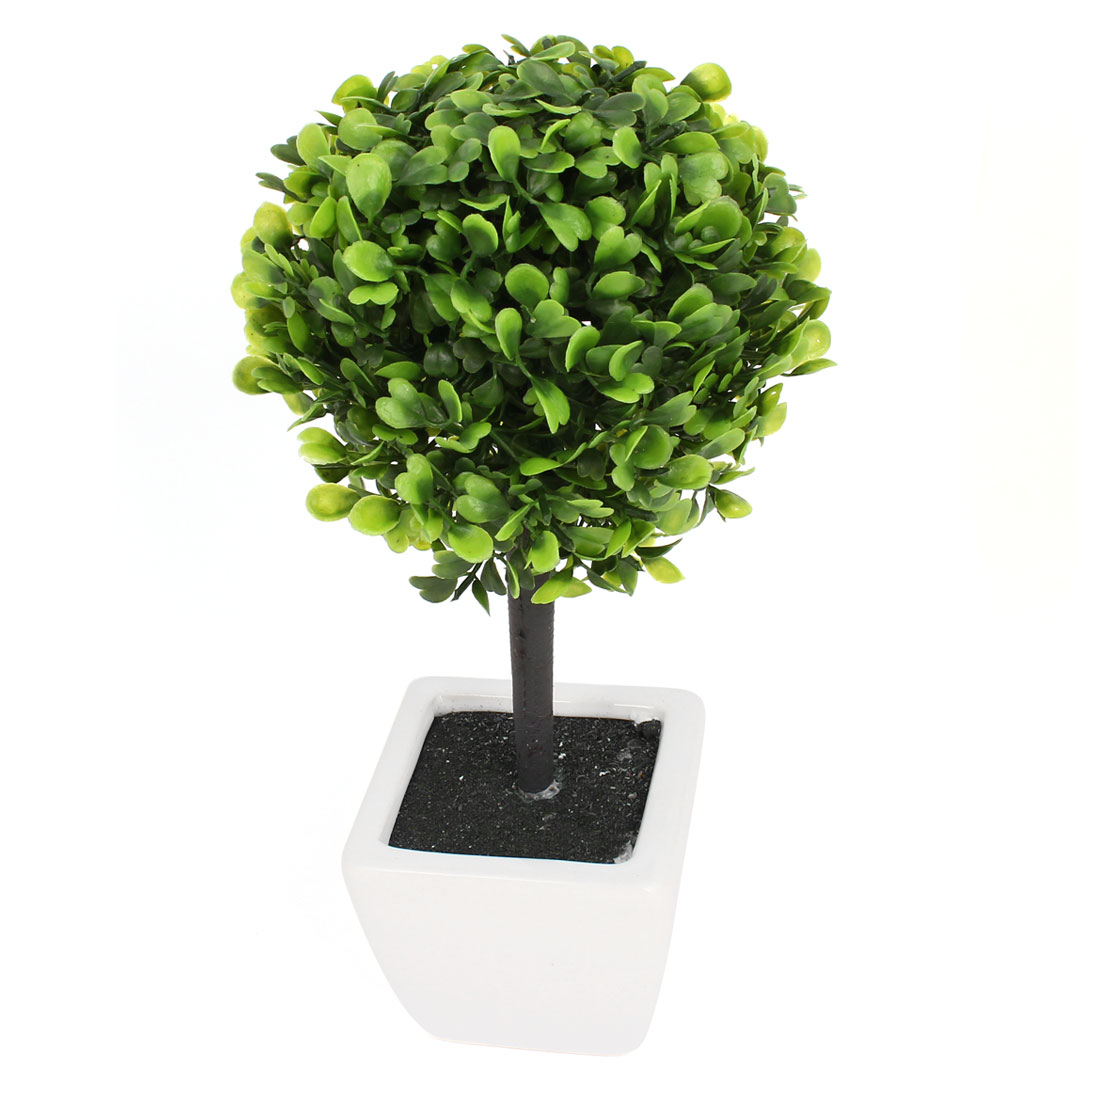 Artificial Bonsai Potted Love Plant Foliage Decor Decorative Home Office Green